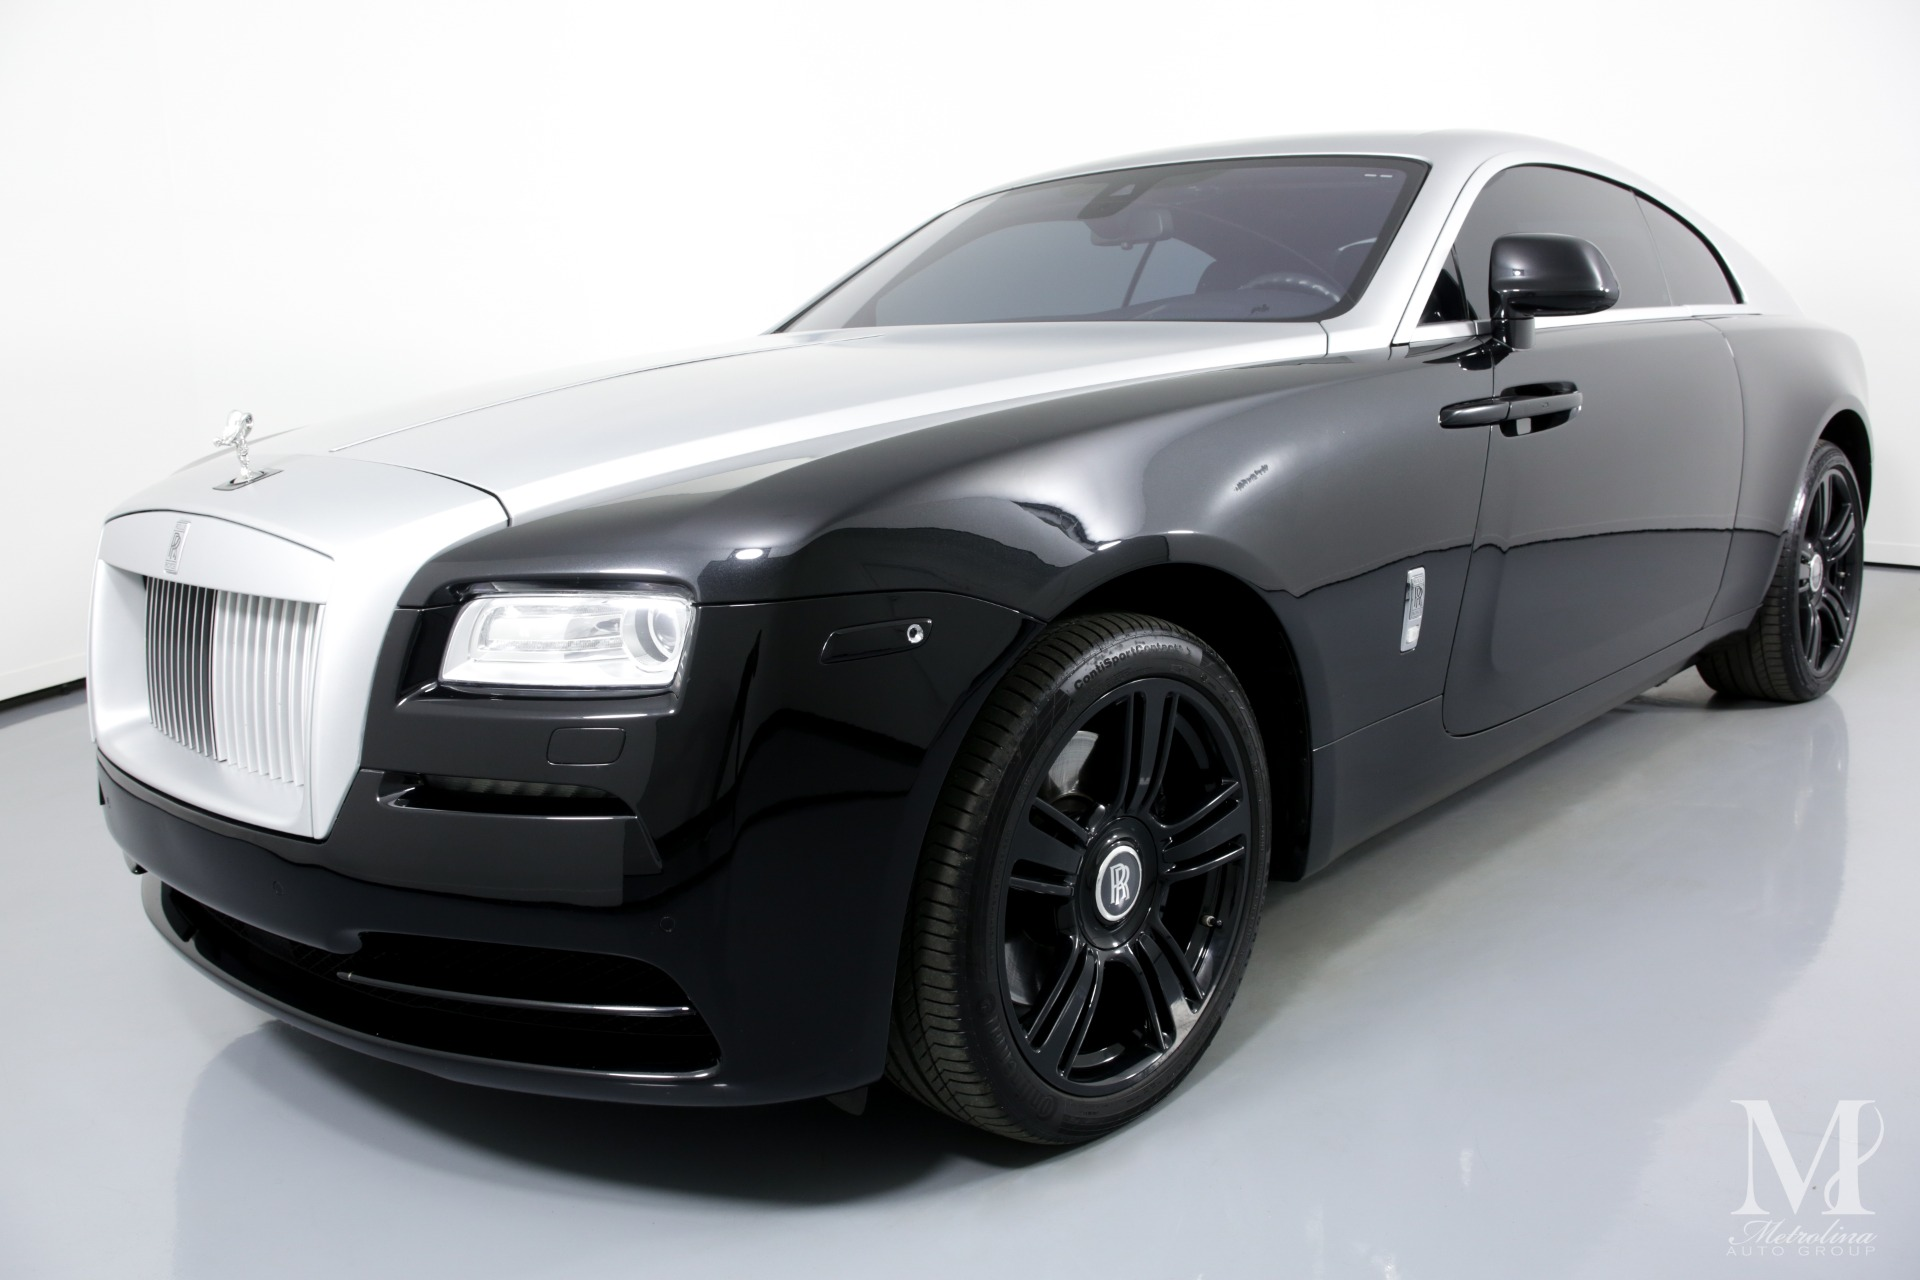 Used 2014 Rolls-Royce Wraith for sale $149,996 at Metrolina Auto Group in Charlotte NC 28217 - 4